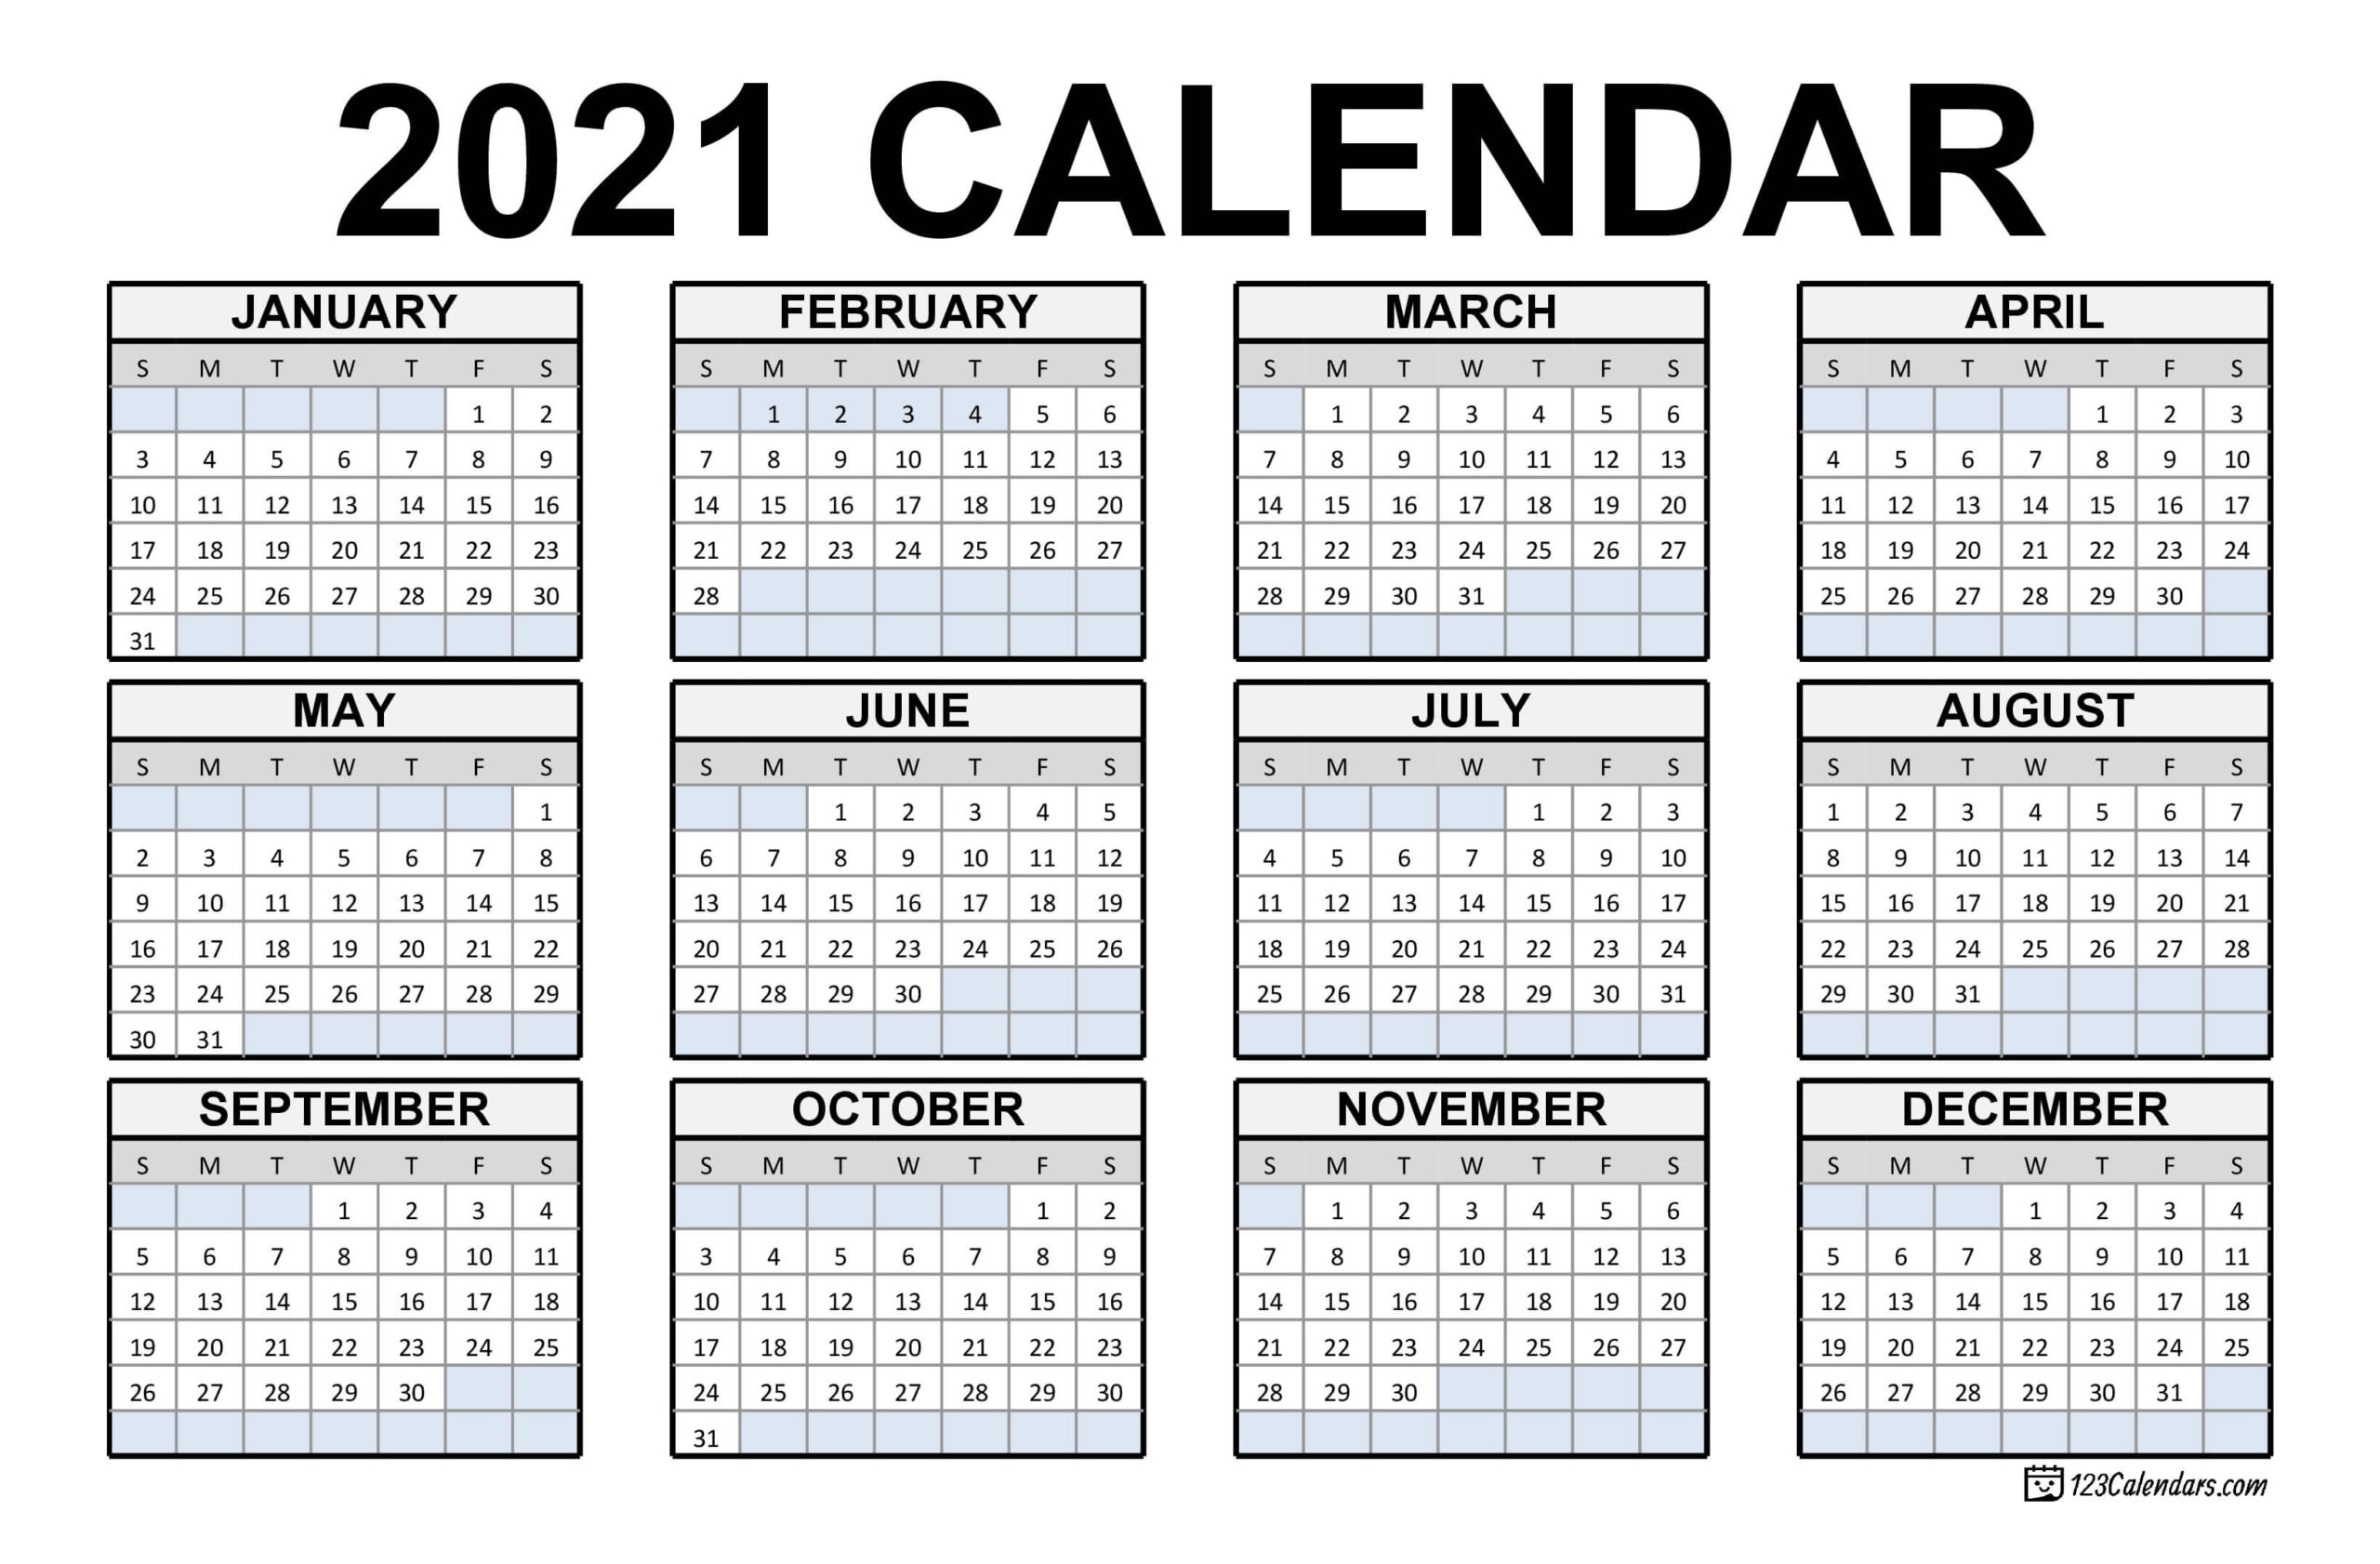 2021 Printable Calendar | 123Calendars intended for Fill In Calendar 2021 Printable